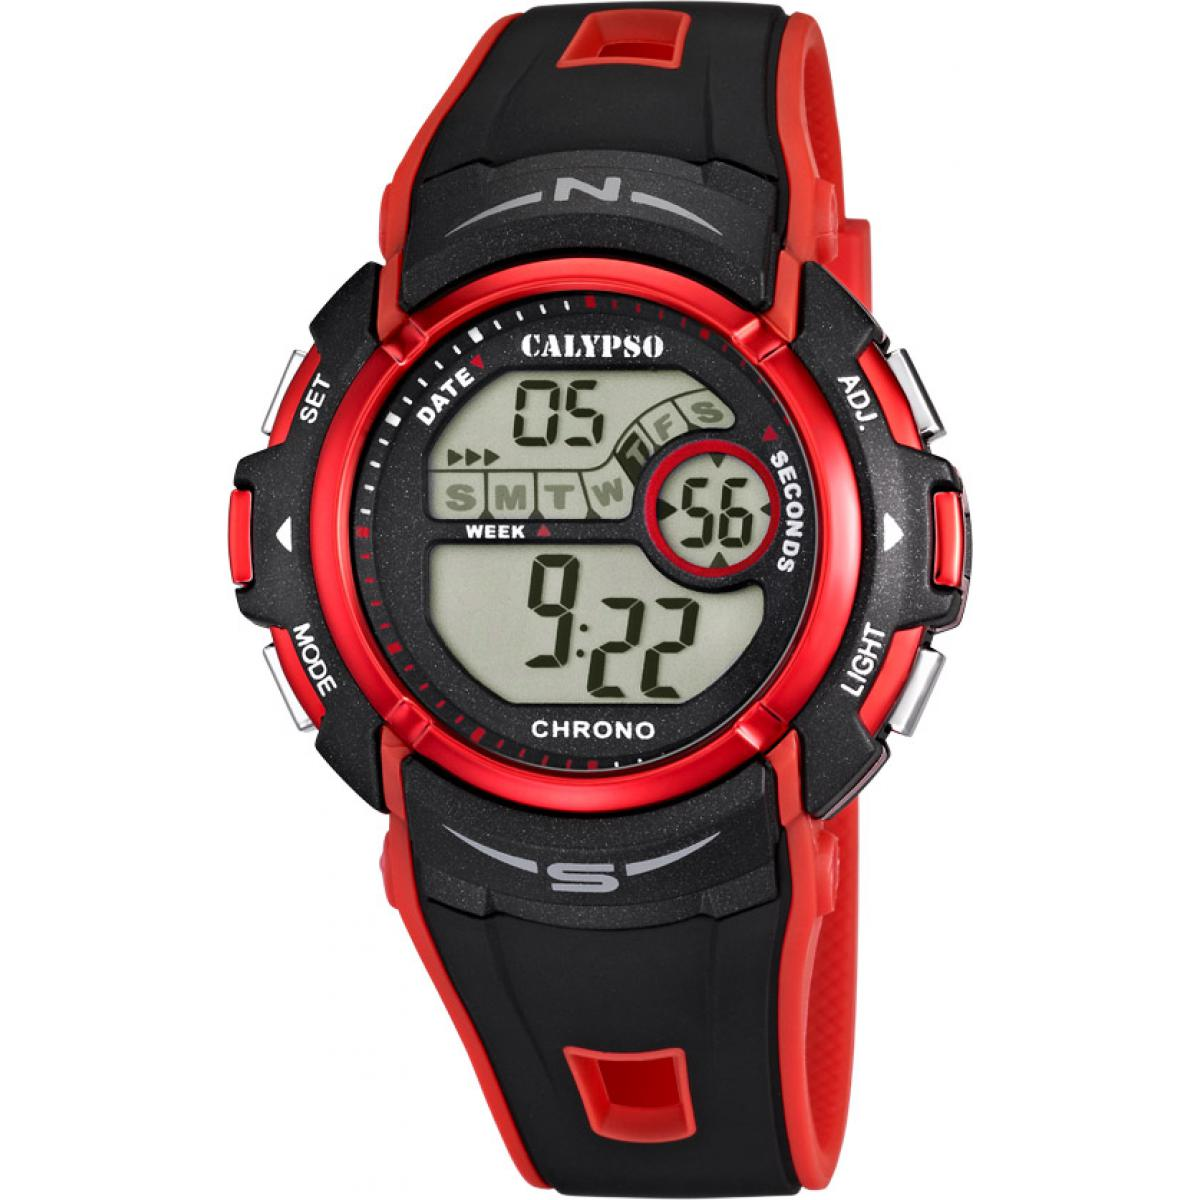 Montre Calypso Silicone Digital For Man K5610-5 - Garçon